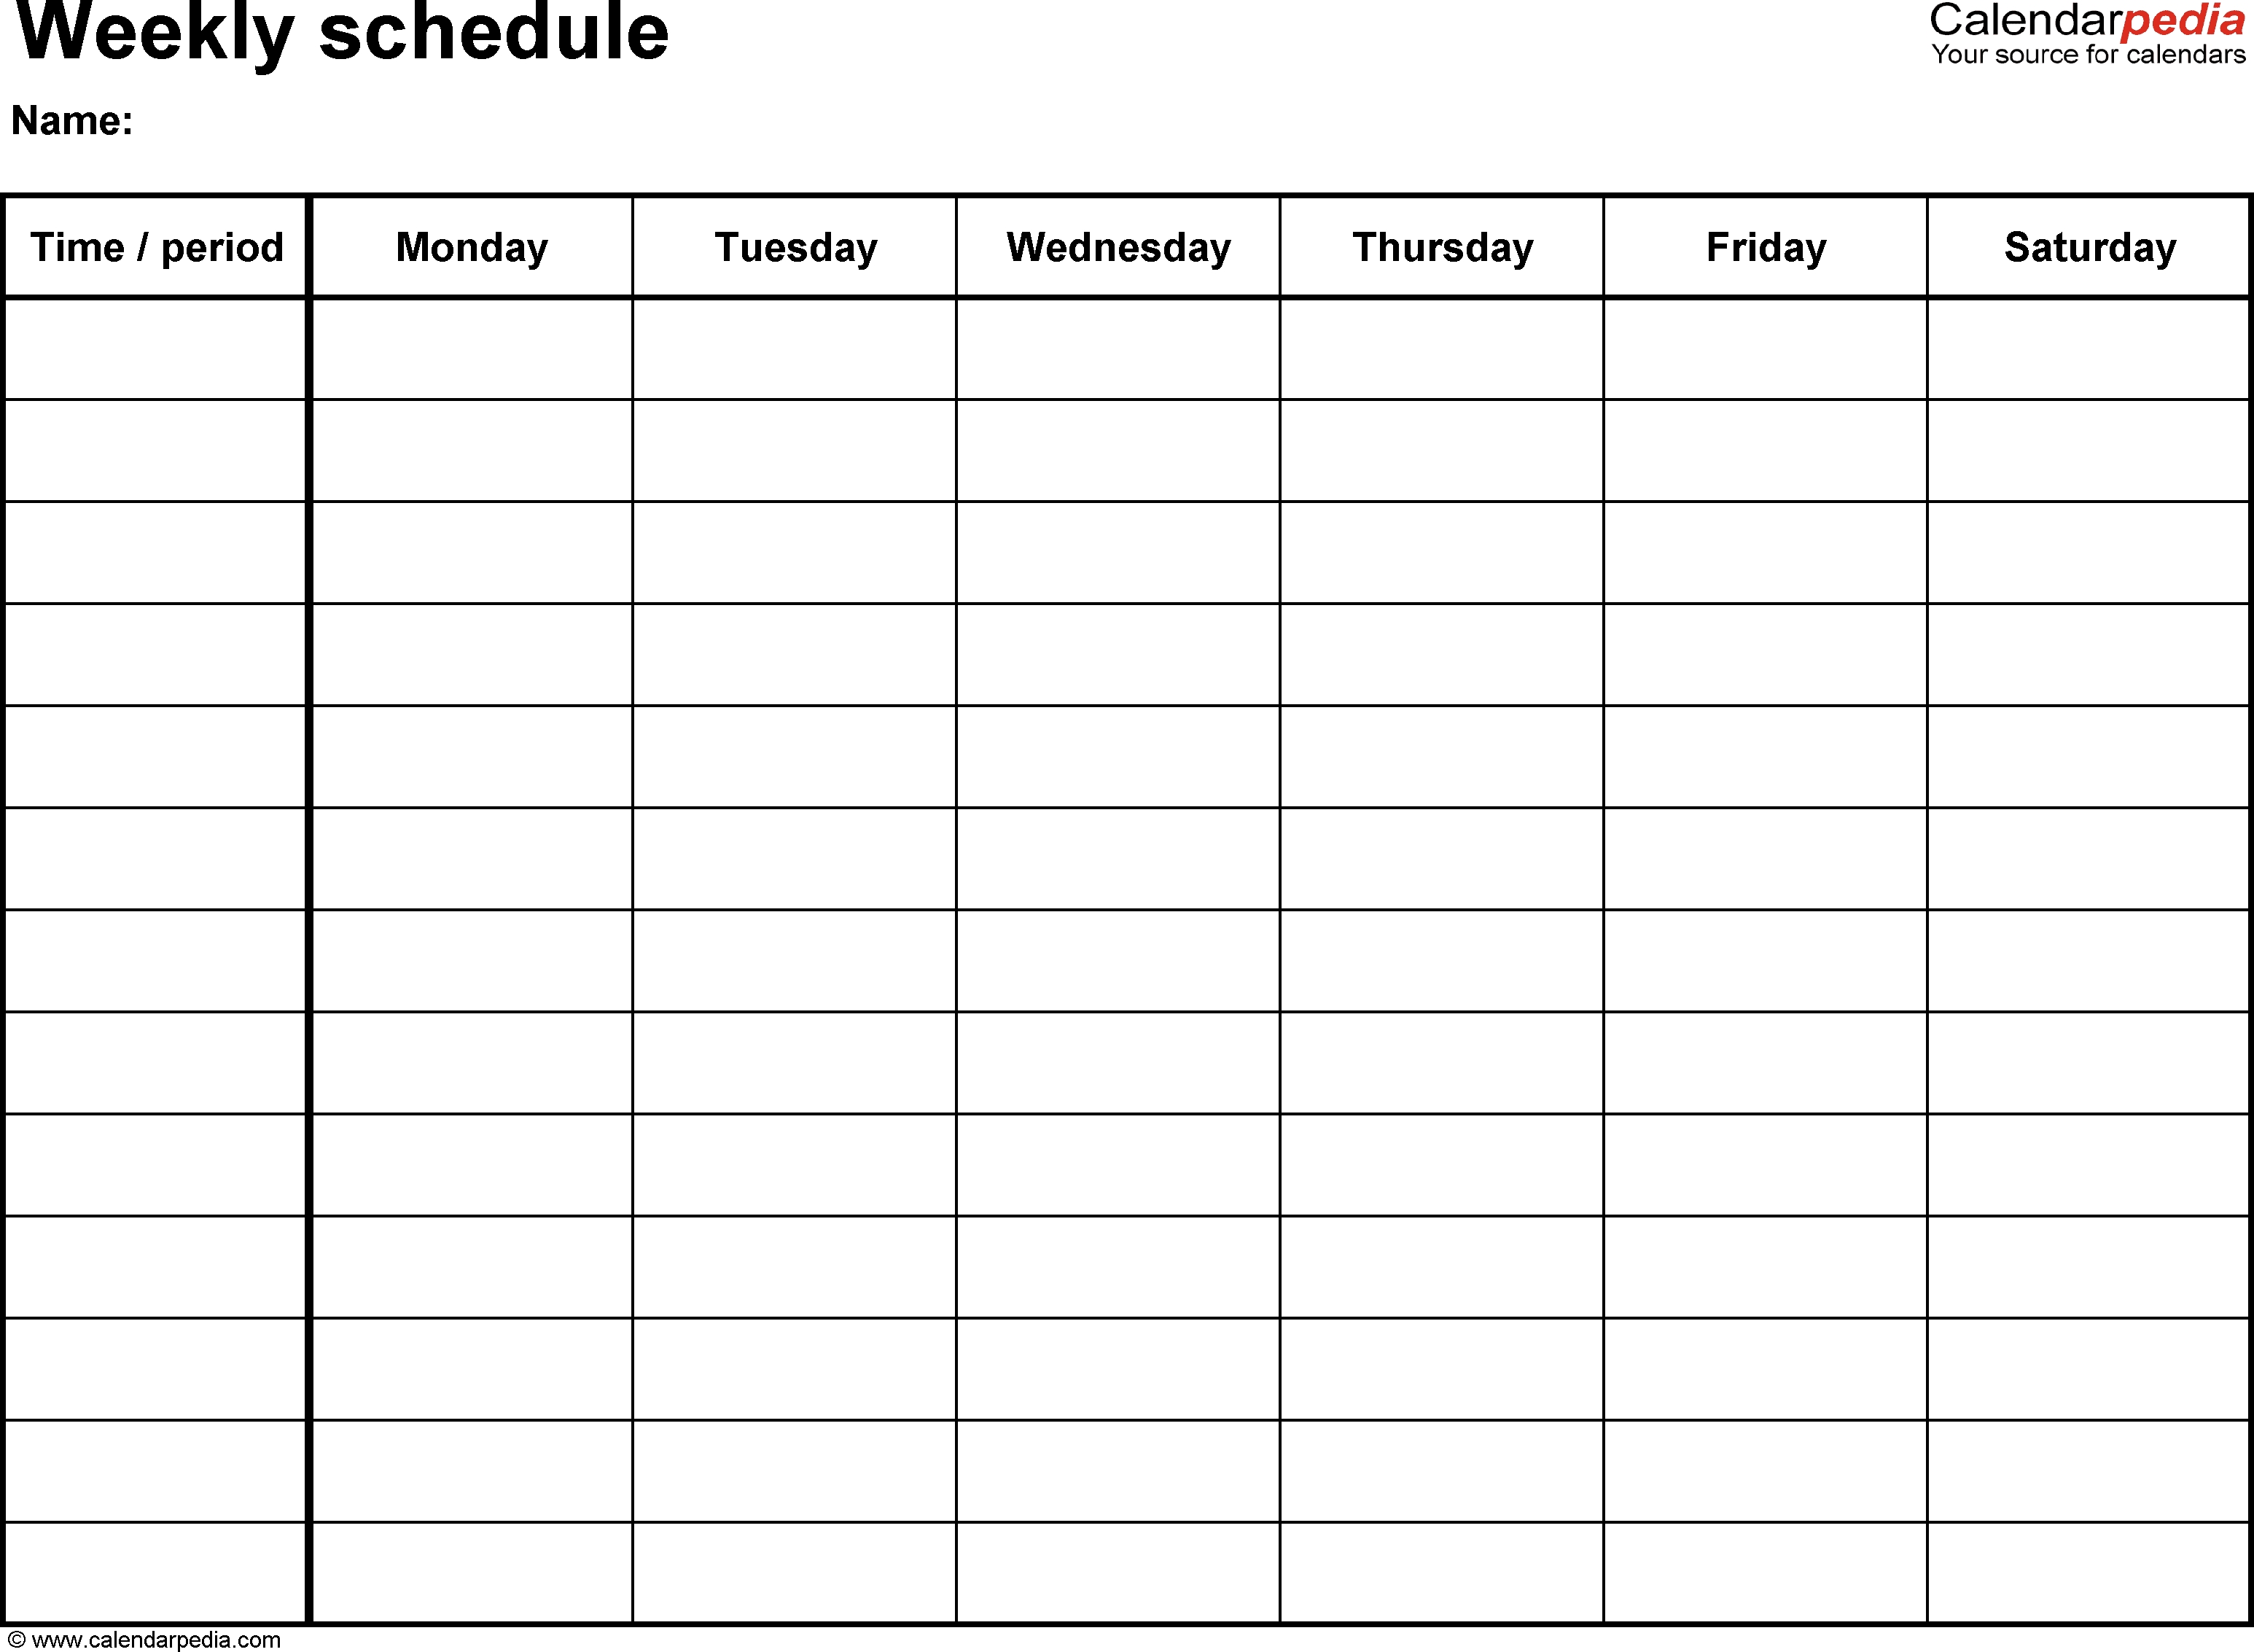 Free Weekly Schedule Templates For Word - 18 Templates-Calendar Fill In Templates